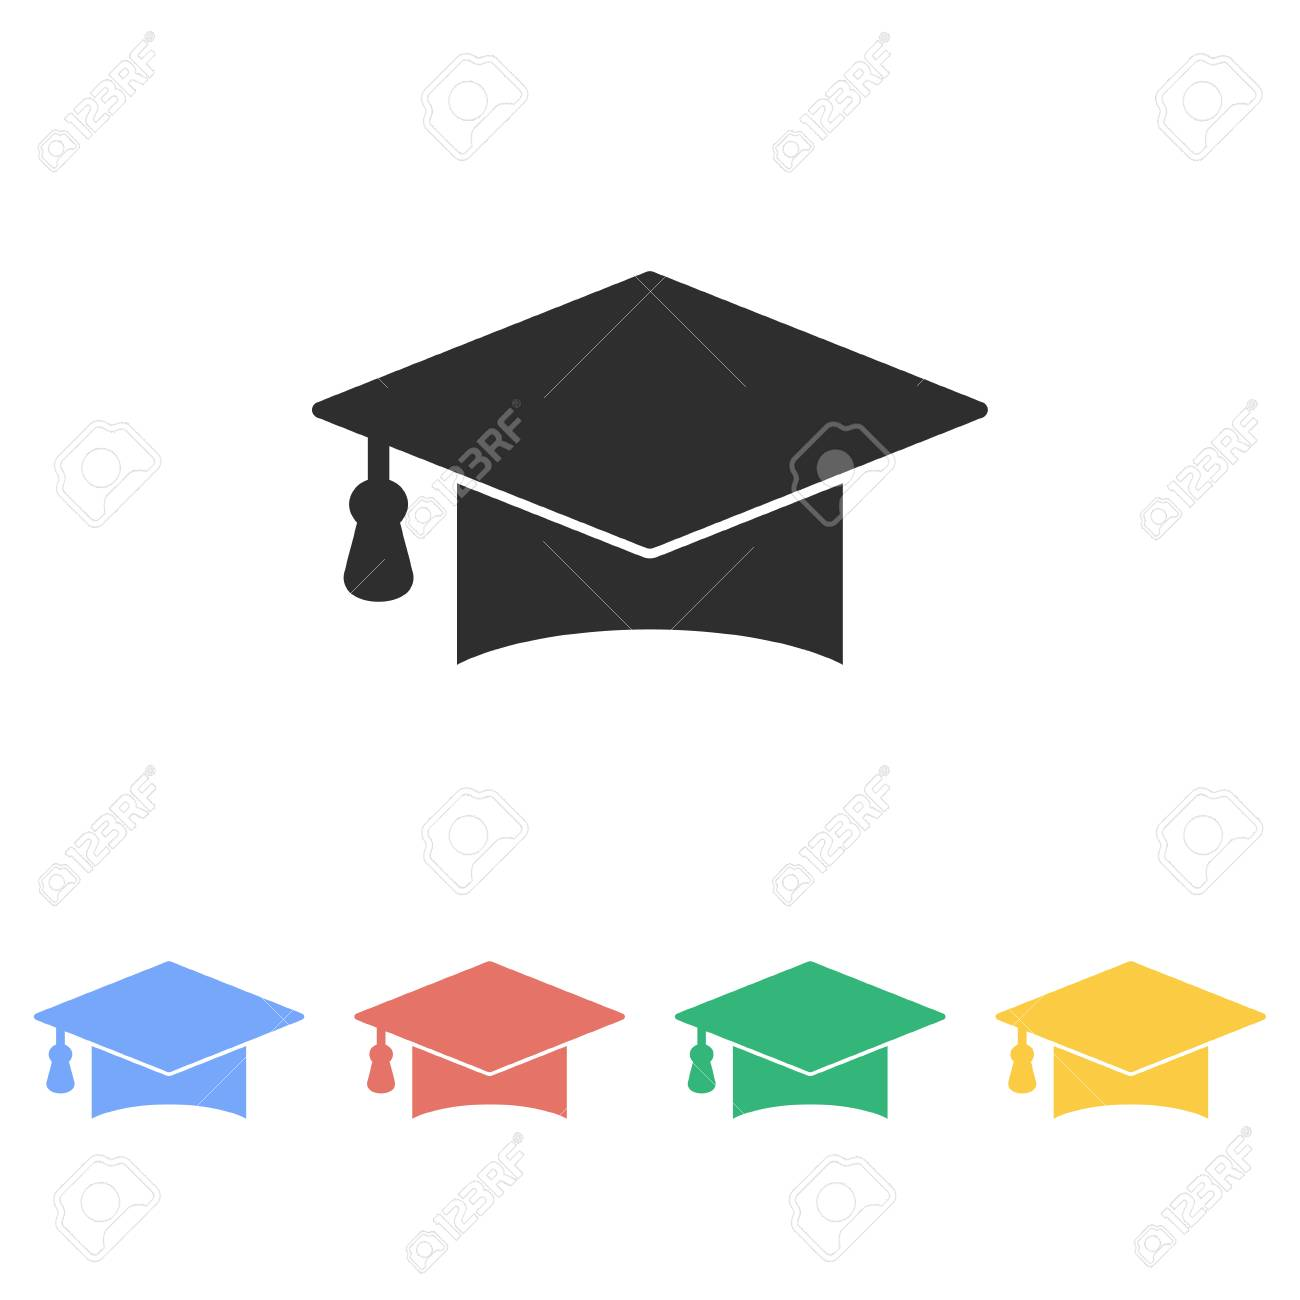 fbc2f40b5f1 Graduation cap vector icon. Illustration isolated on white background for  graphic and web design.